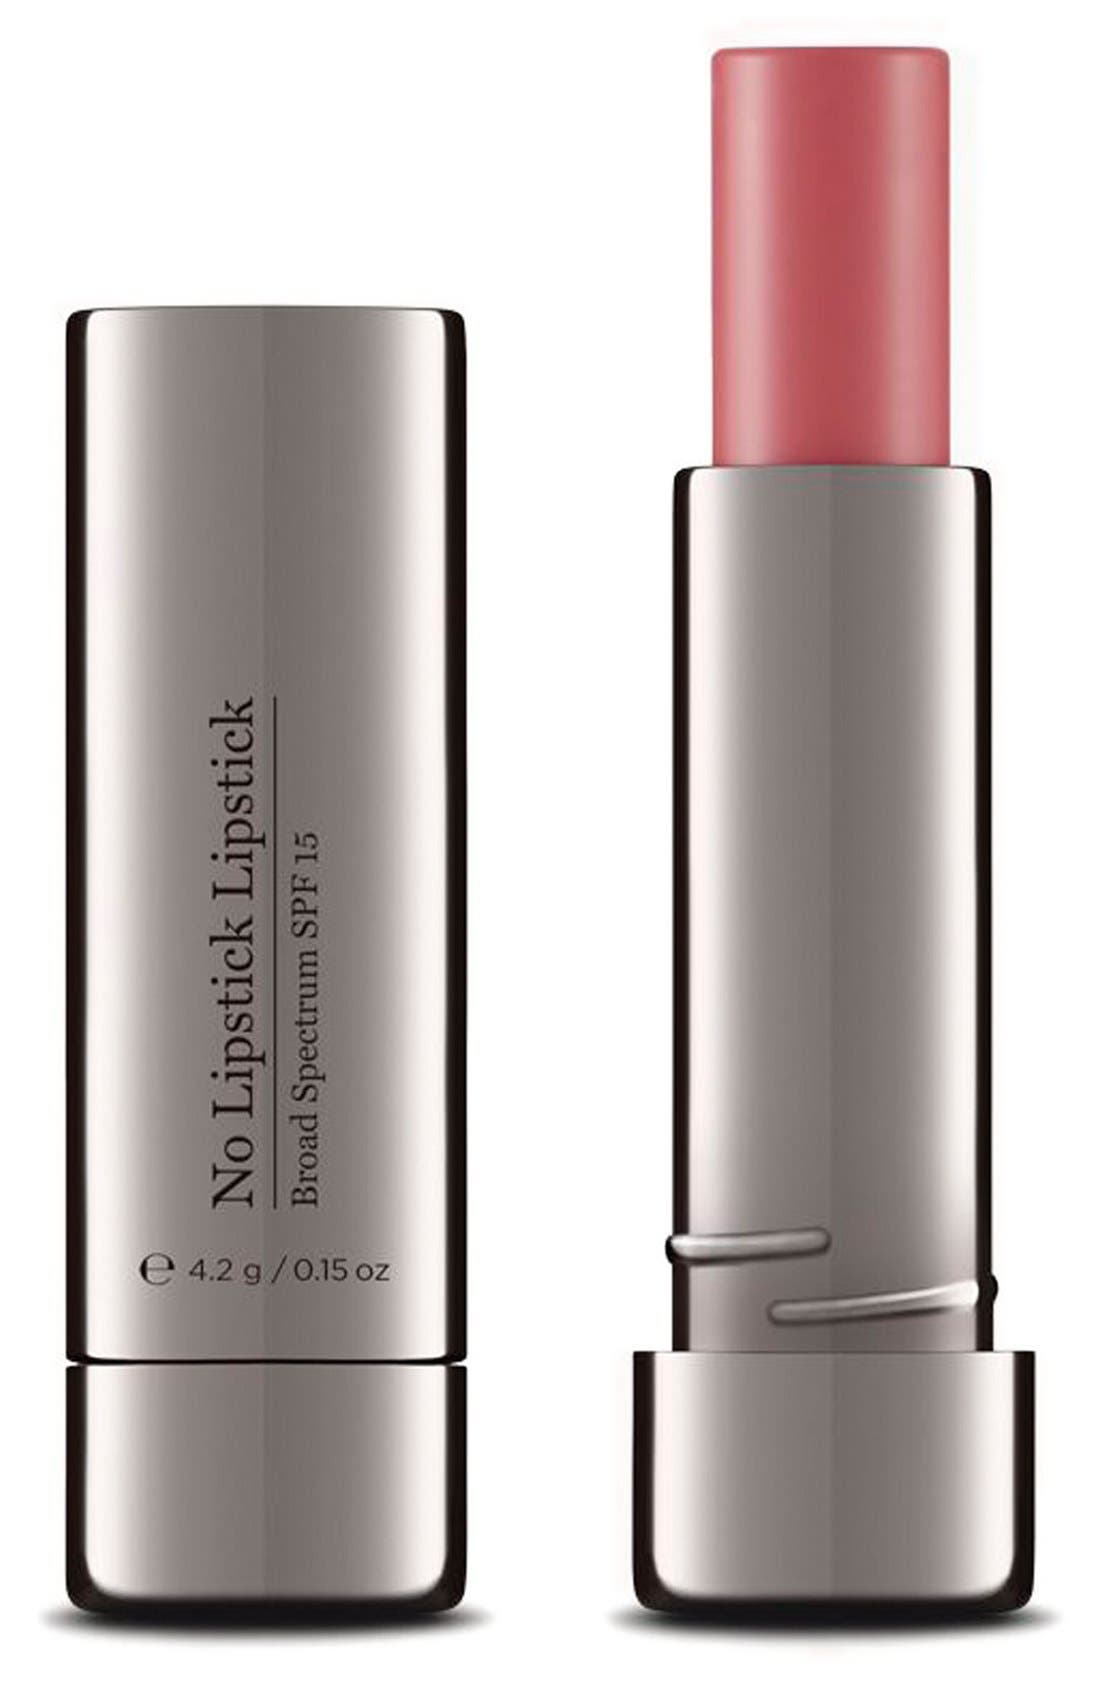 No Lipstick Lipstick SPF 15,                         Main,                         color, 000